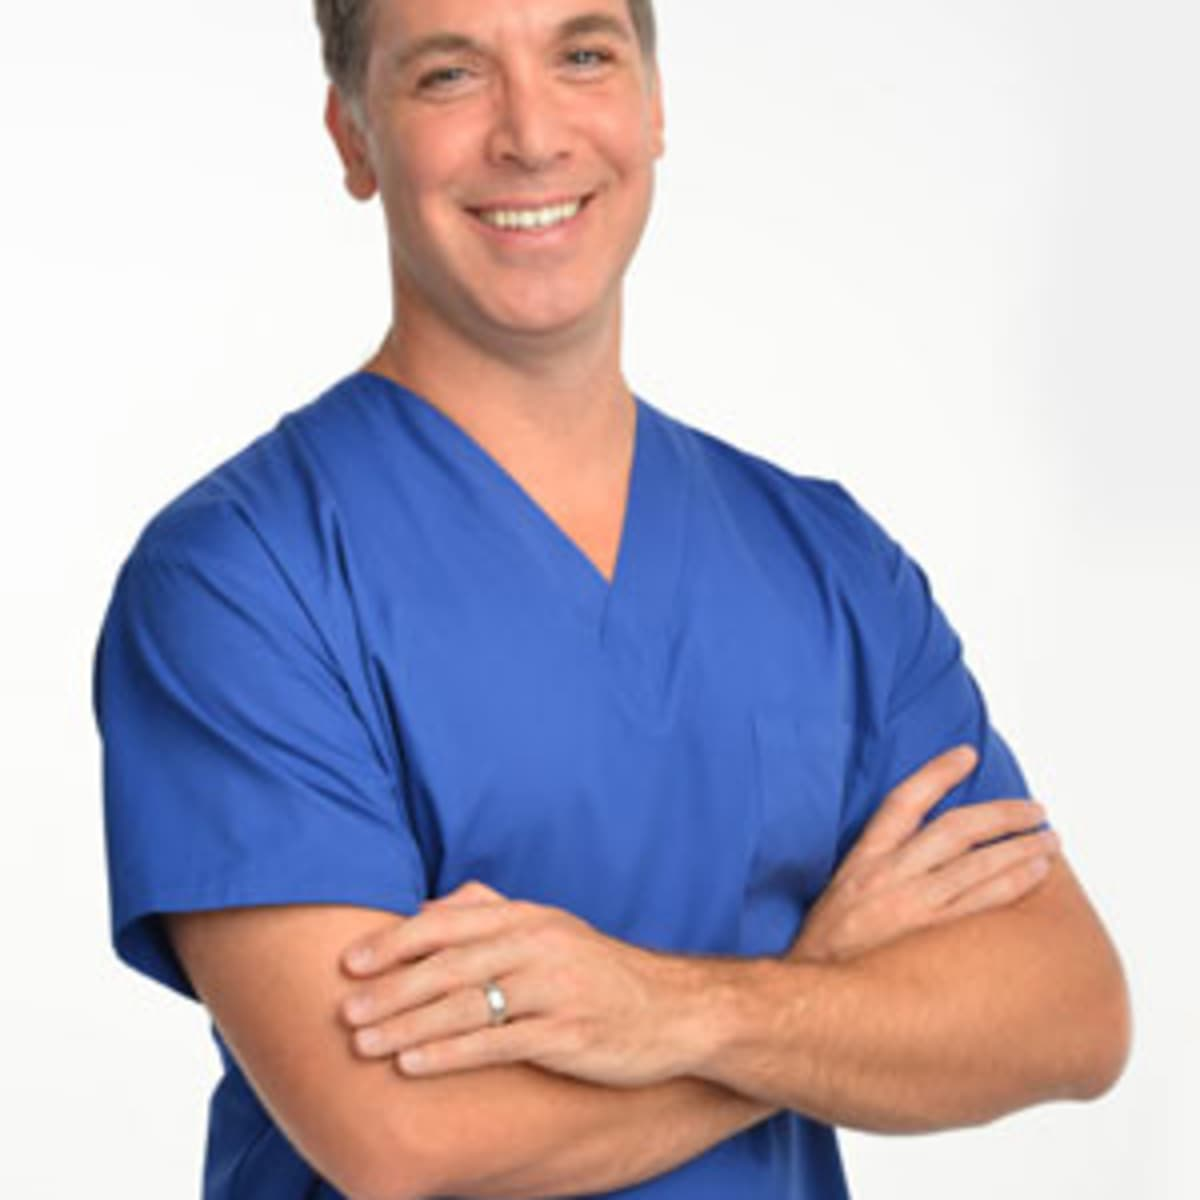 dr jarrod friedman md boca raton fl pain management doctor